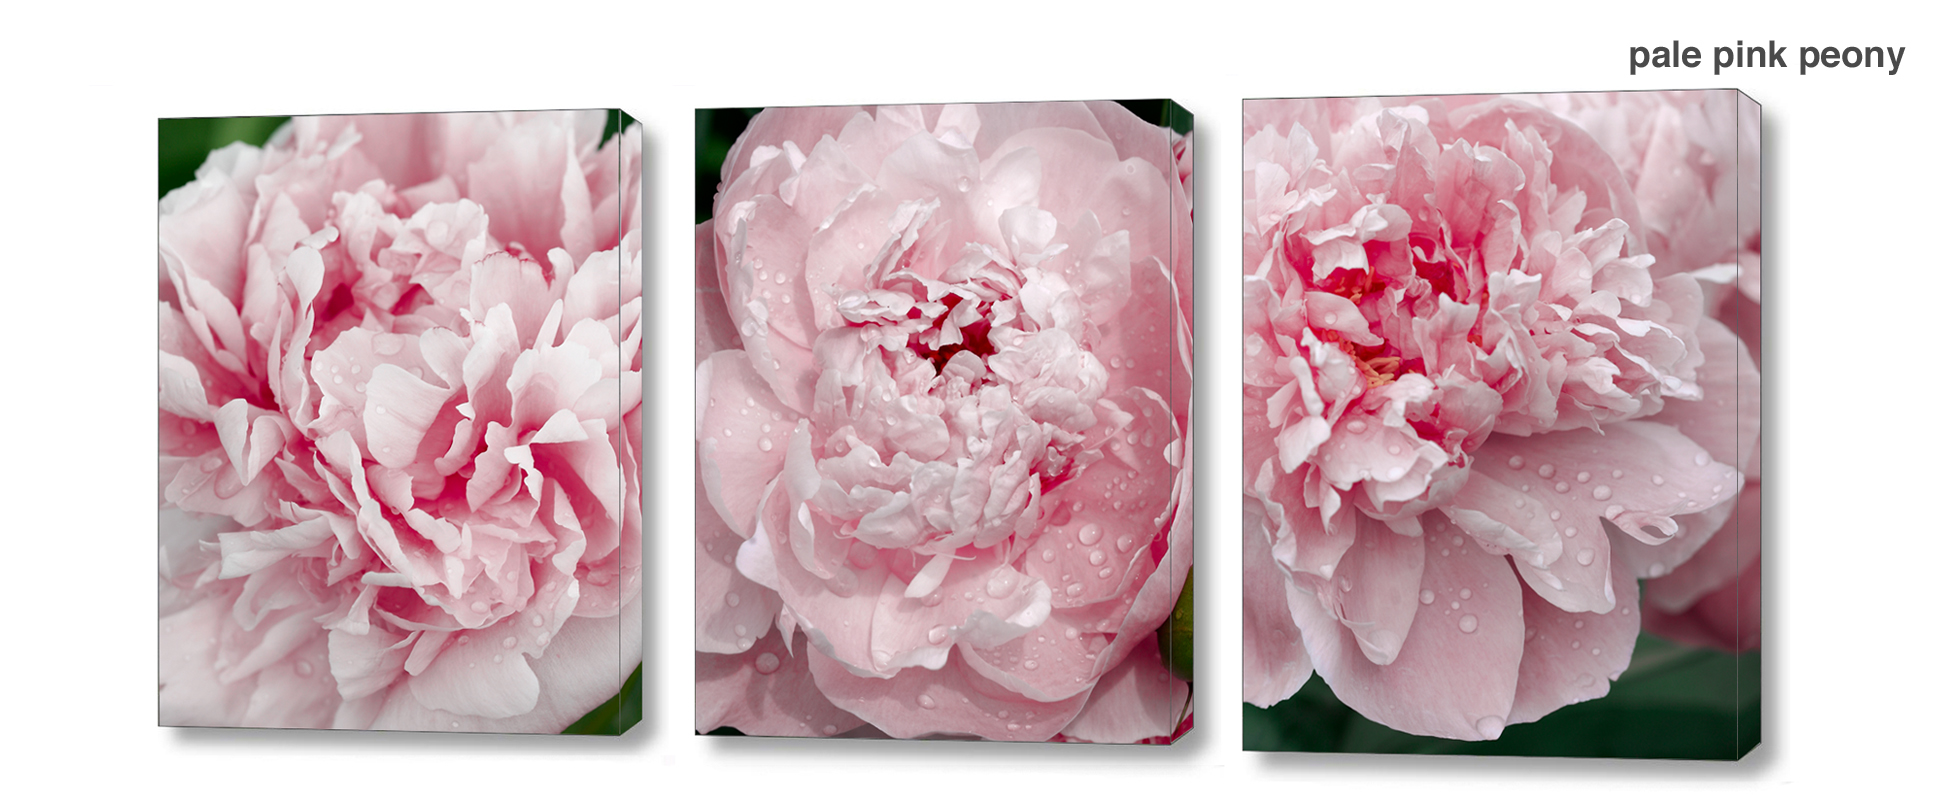 pale pink peony series - Floral Series Wall Decor Macro Photography Matted & Giclée Canvas Prints